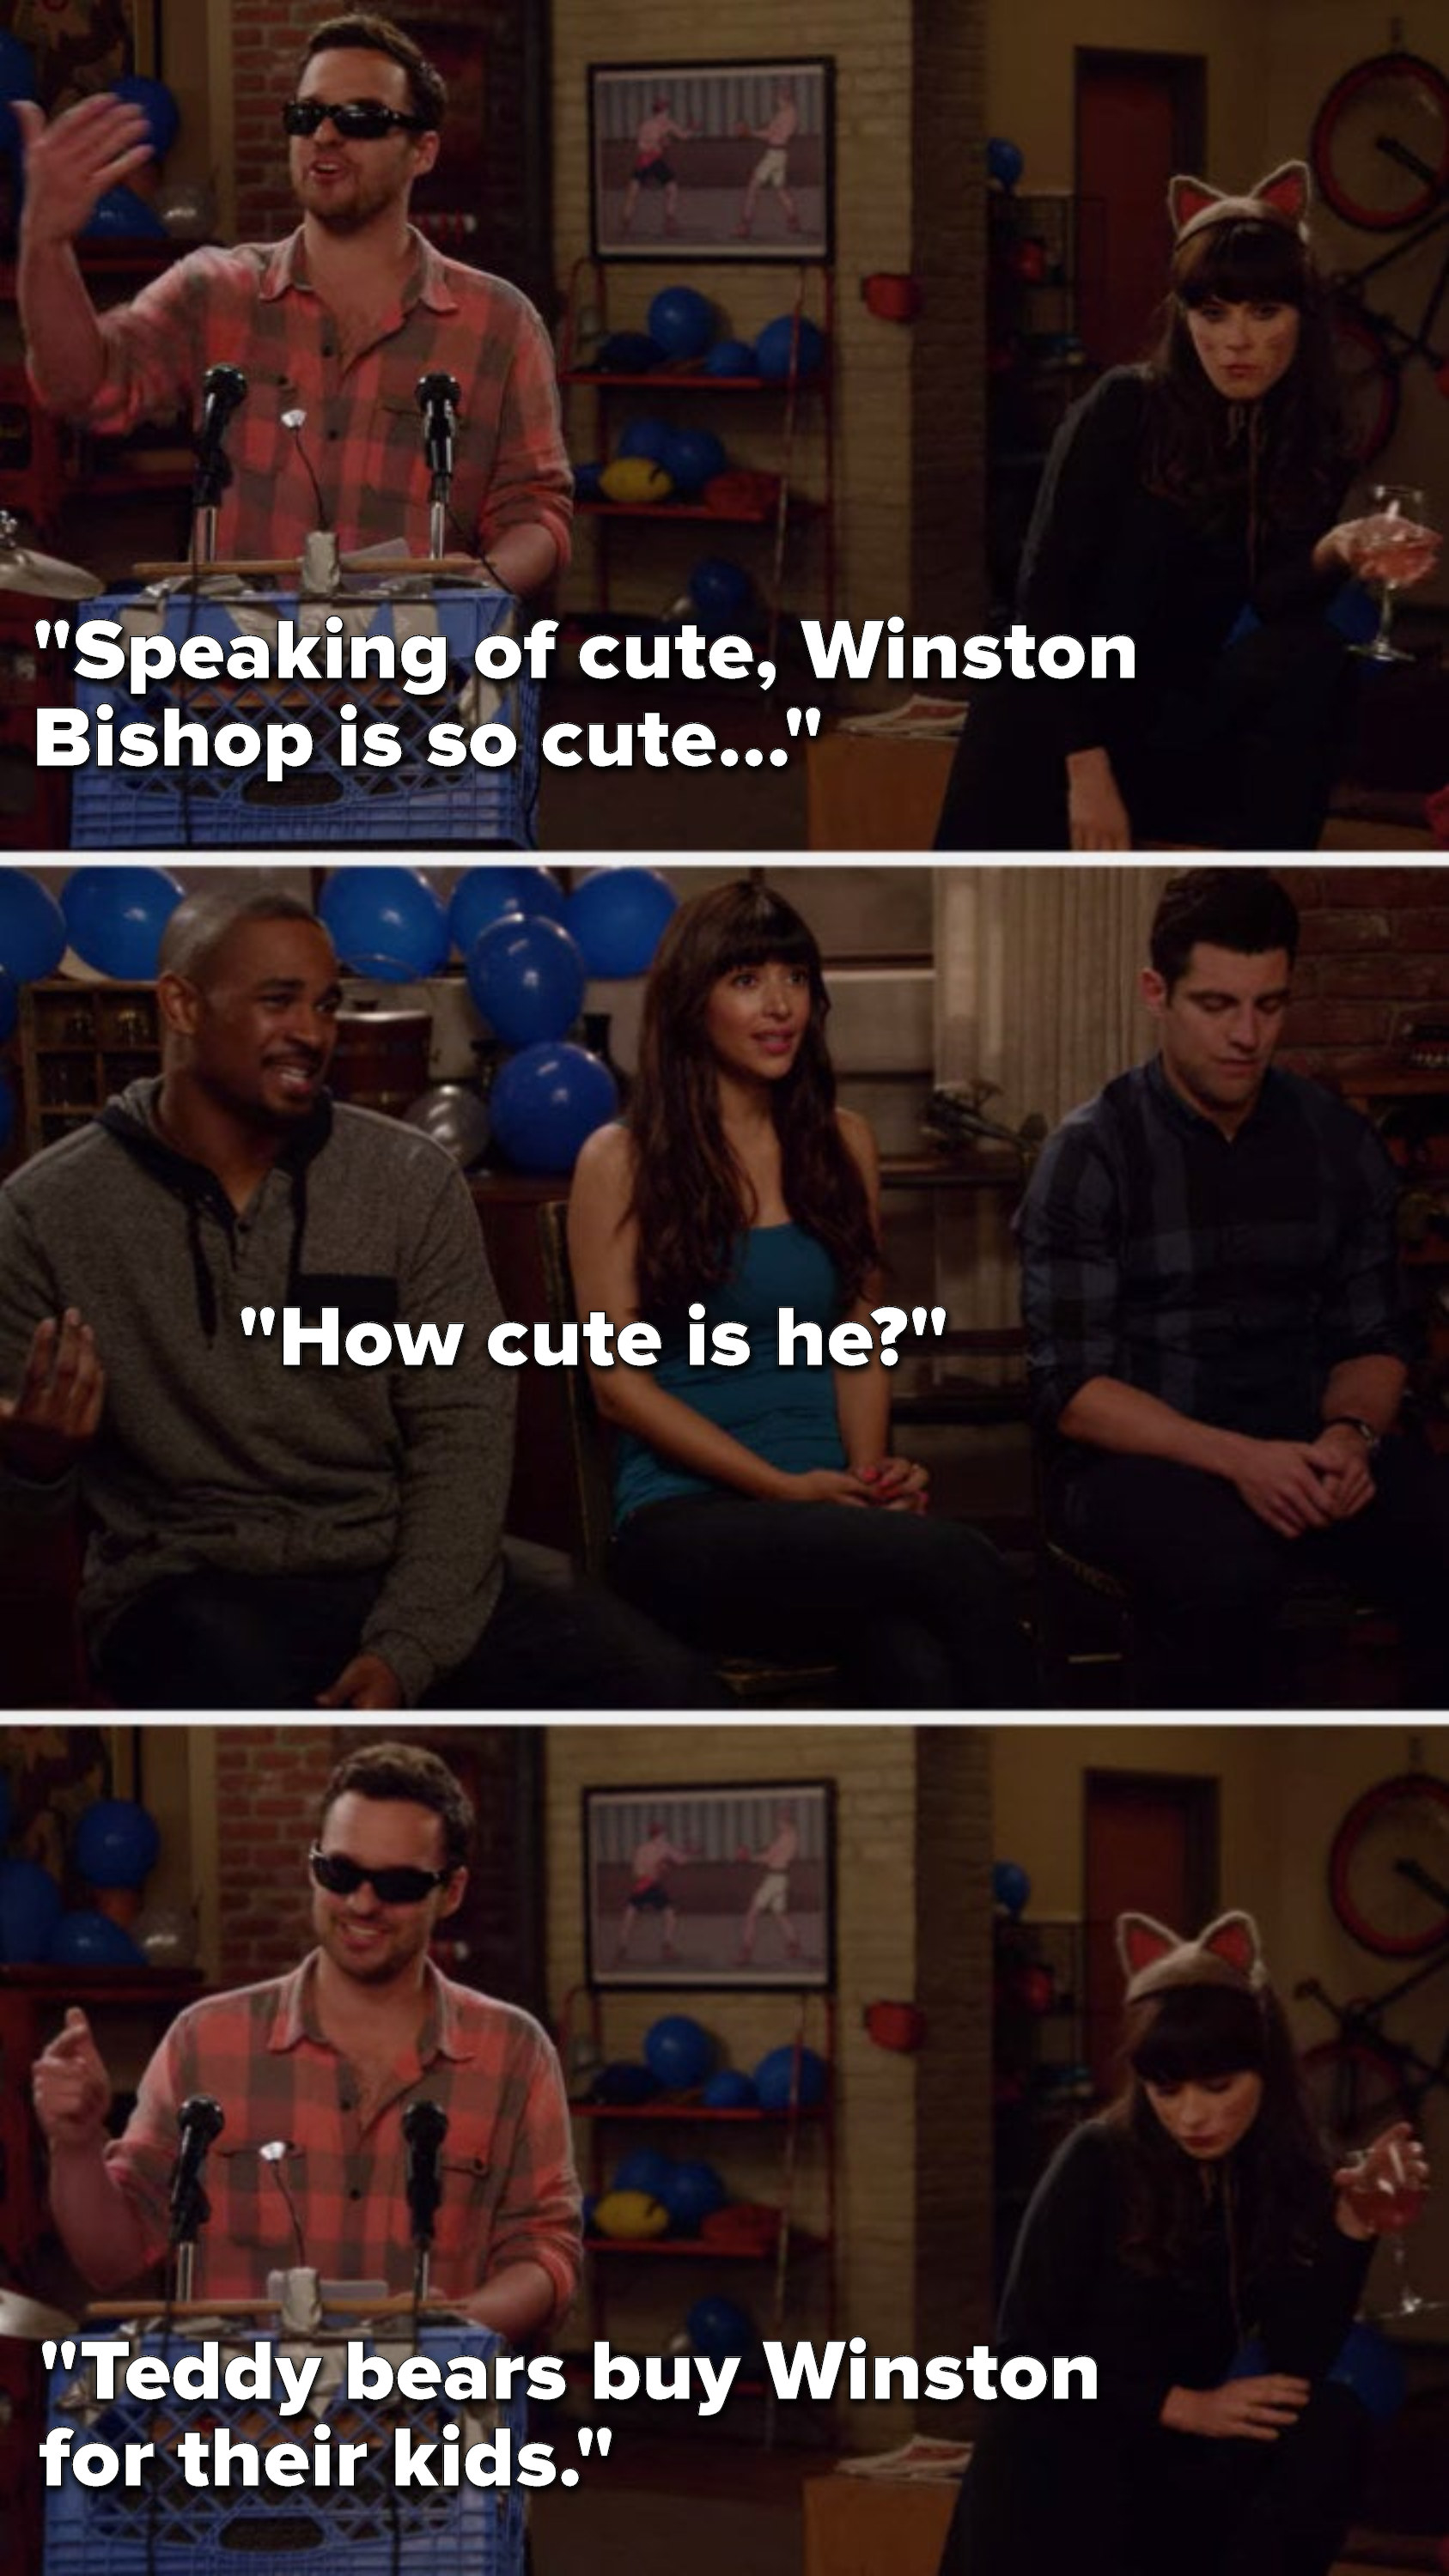 """Nick says, """"Speaking of cute, Winston Bishop is so cute,"""" Cece, Coach, and Schmidt say, """"How cute is he,"""" and Nick says, """"Teddy bears buy Winston for their kids?"""